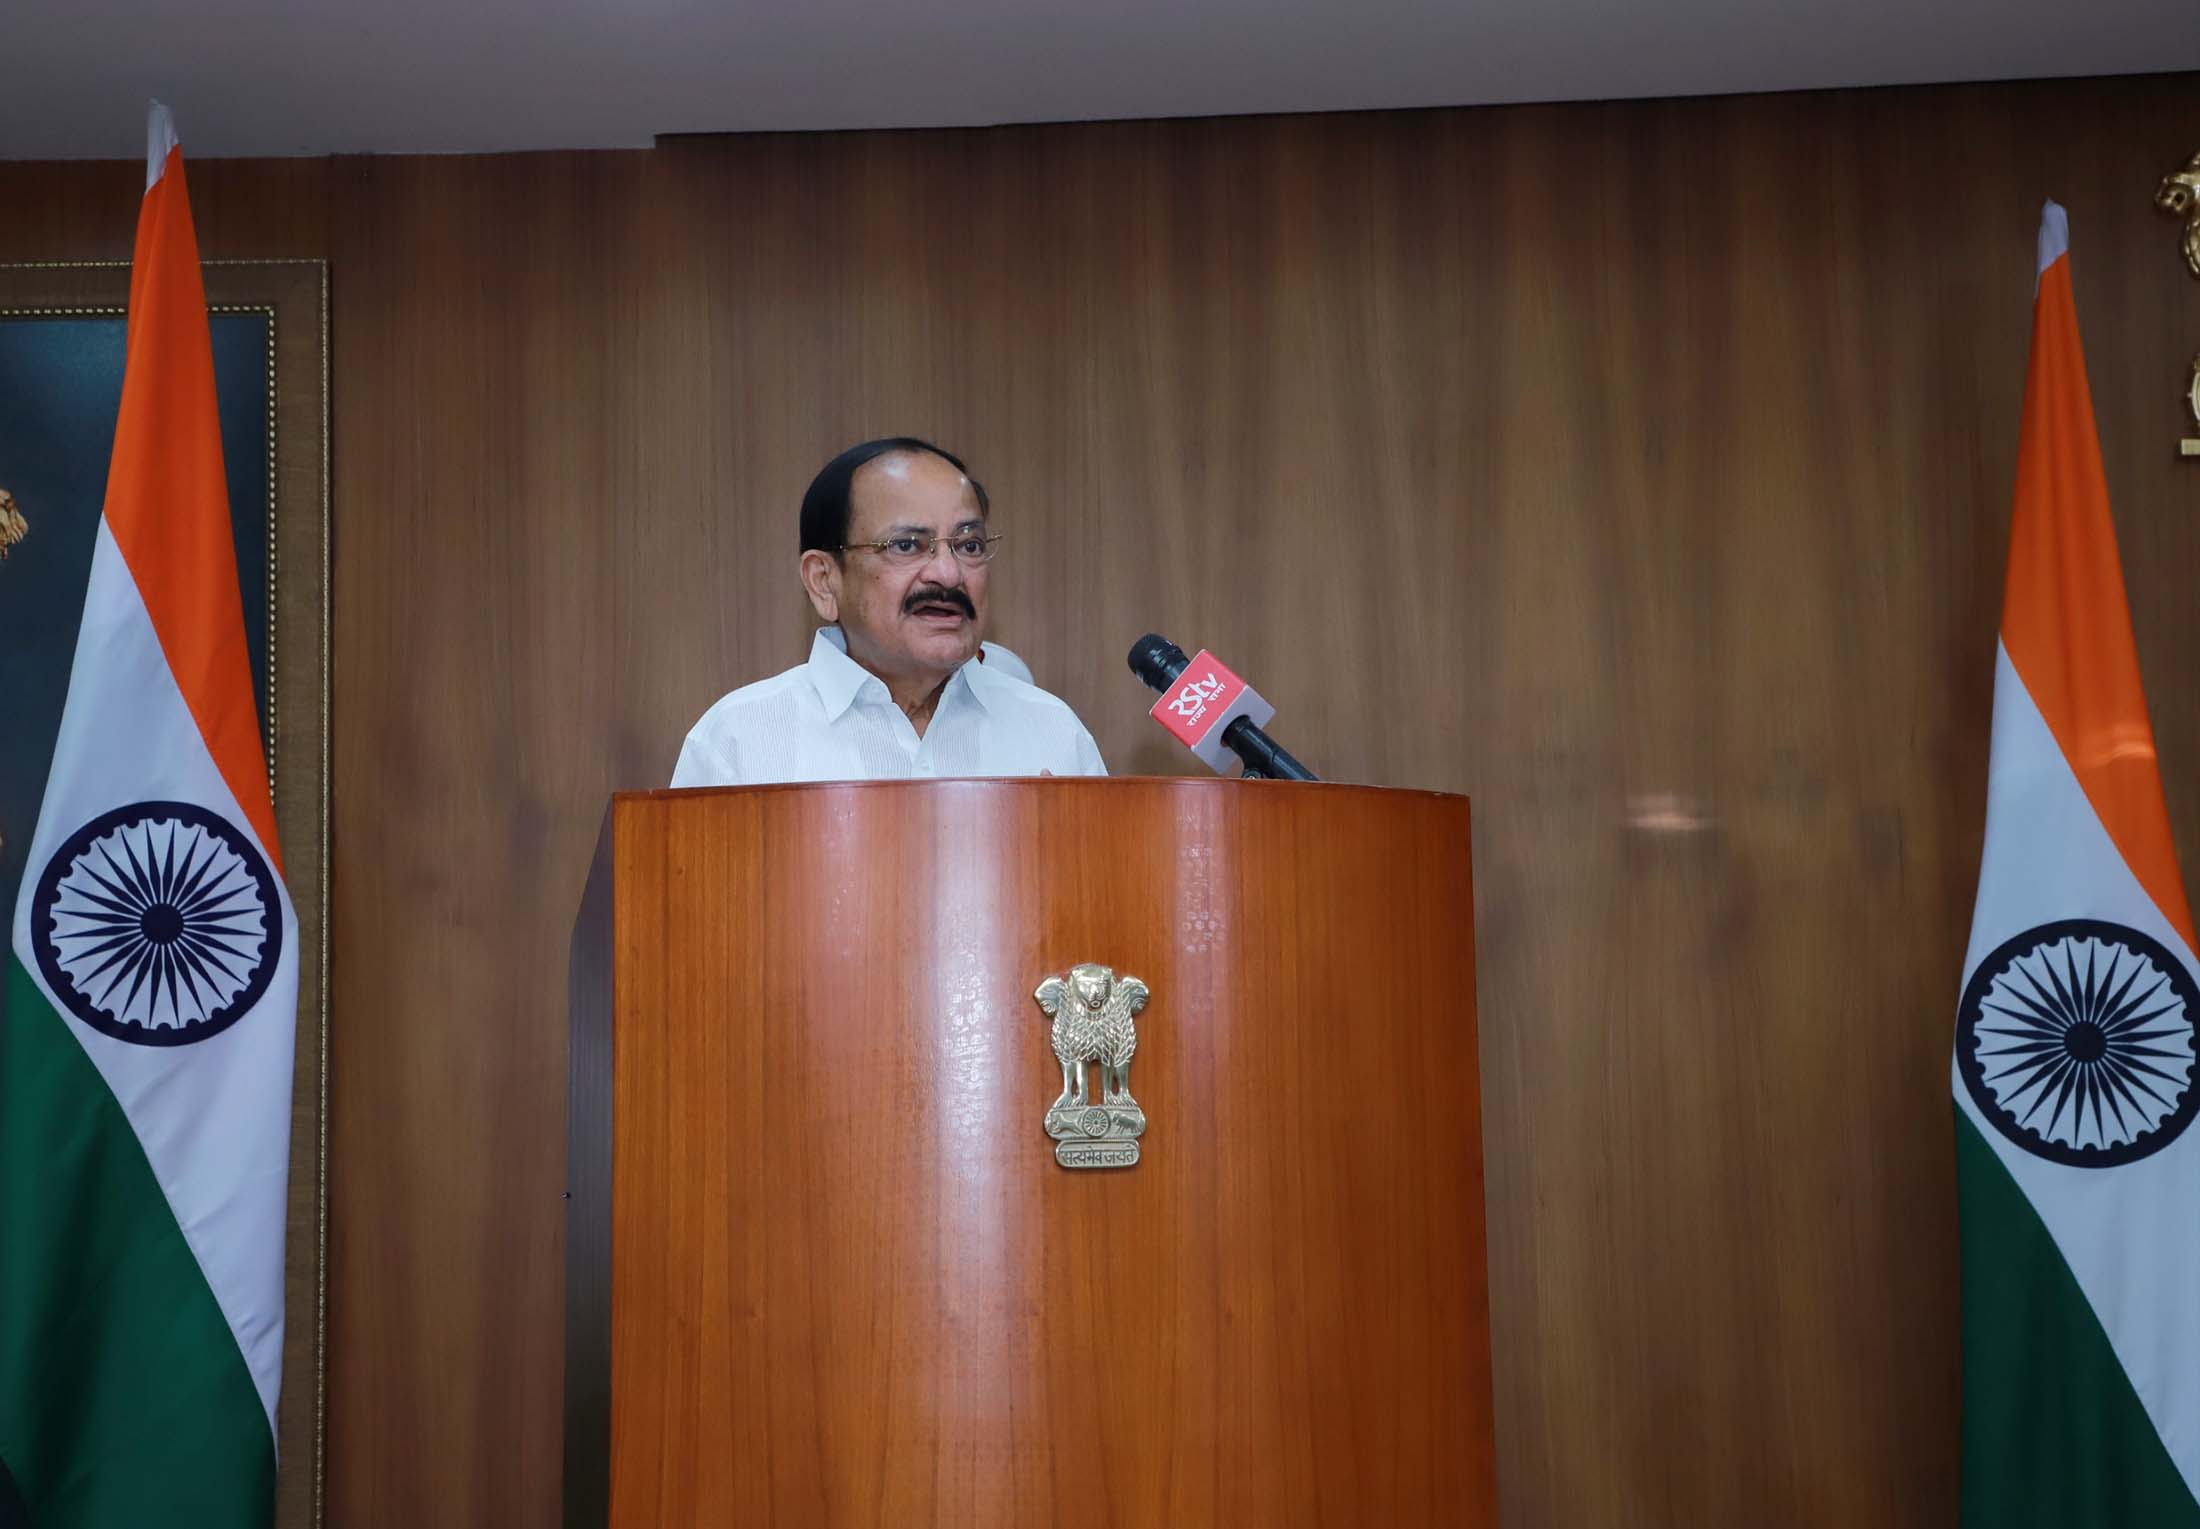 The Vice President, Shri M. Venkaiah Naidu delivering his address virtually on the occasion of Hindi Diwas,  from New Delhi on 14 September 2020.